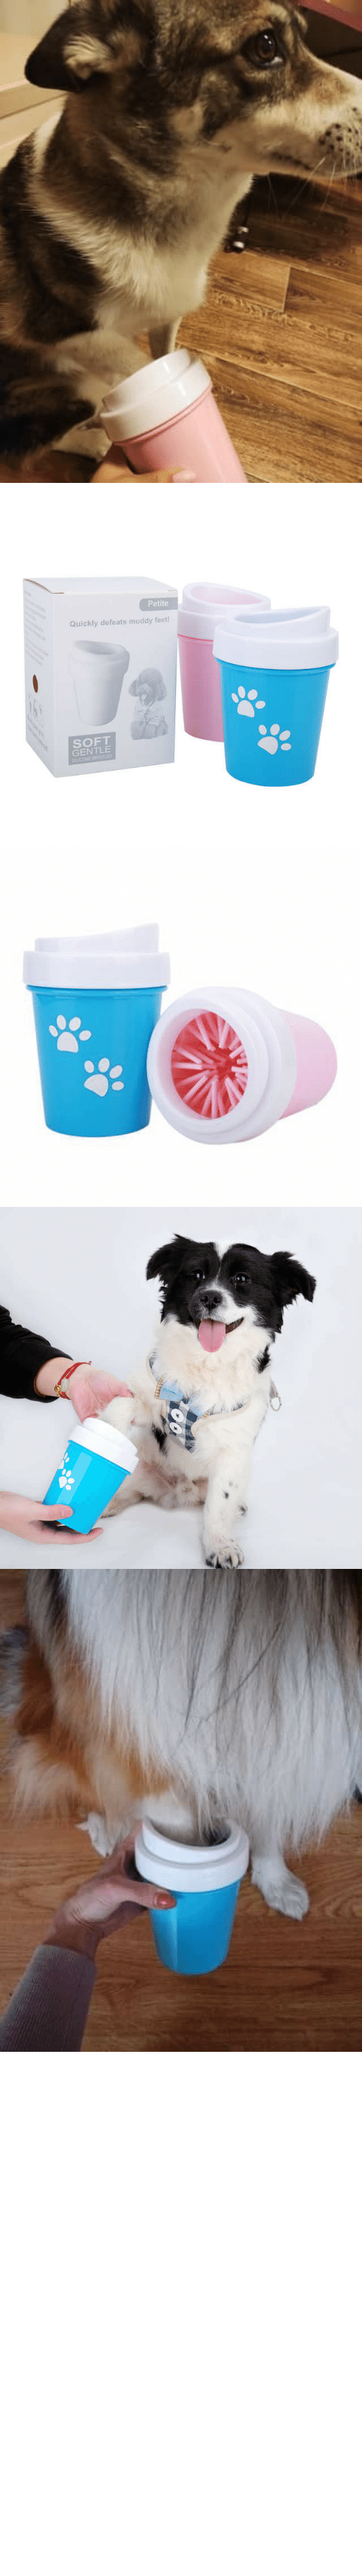 "Best Friend, Tumblr, and Dirty: awesomage:   PAW CLEANER     Now your best friend can have all the muddy dirty fun he wants without bringing it all into your home or vehicle.    30% OFF plus Free Worldwide Shipping with coupon code ""CUDDLING""    All funds gathered will be donated for rescue dog shelters    SUPPORTS US NOW, ORDER AND SHARE OUR CAUSE!https://www.doggiemon.com/products/paw-cleaner"